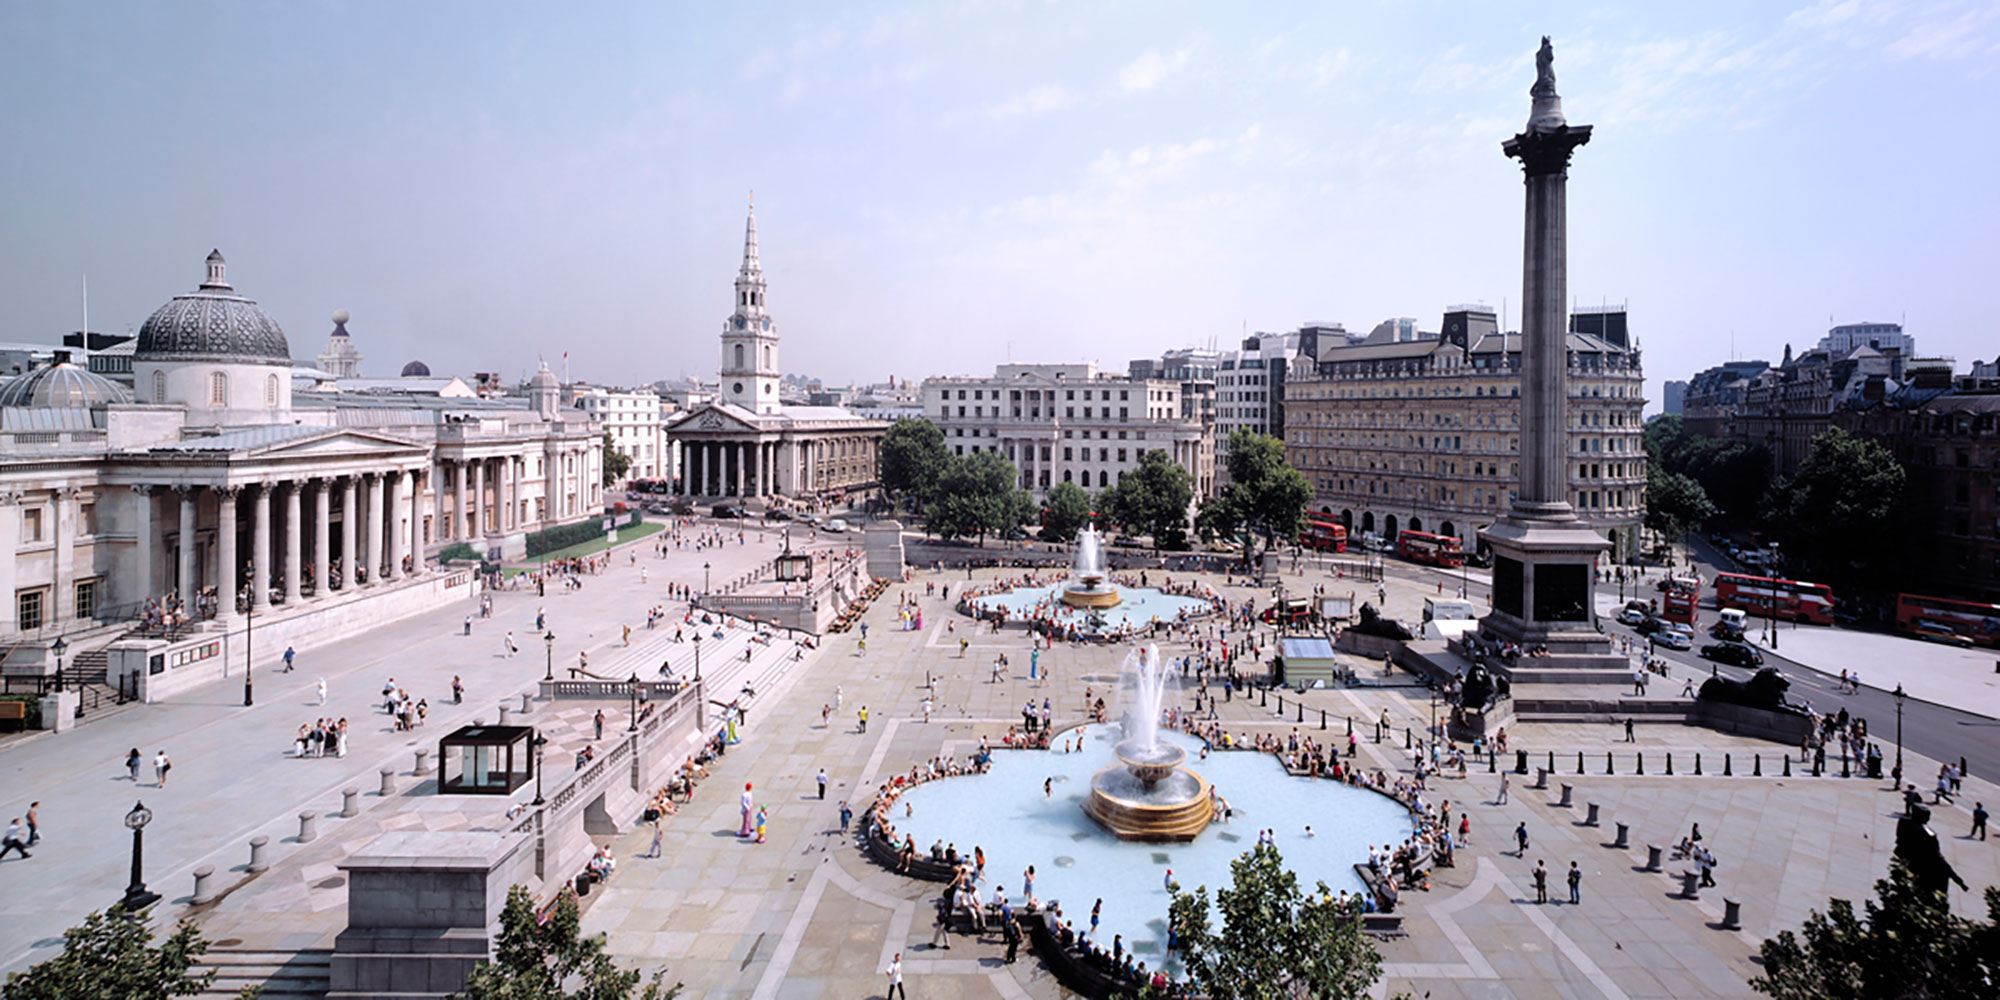 Trafalgar Square with pedestrianised street in front of  National Gallery and new central square facilitating diagonal movement across square.Credit Nigel Young, Foster + Partners